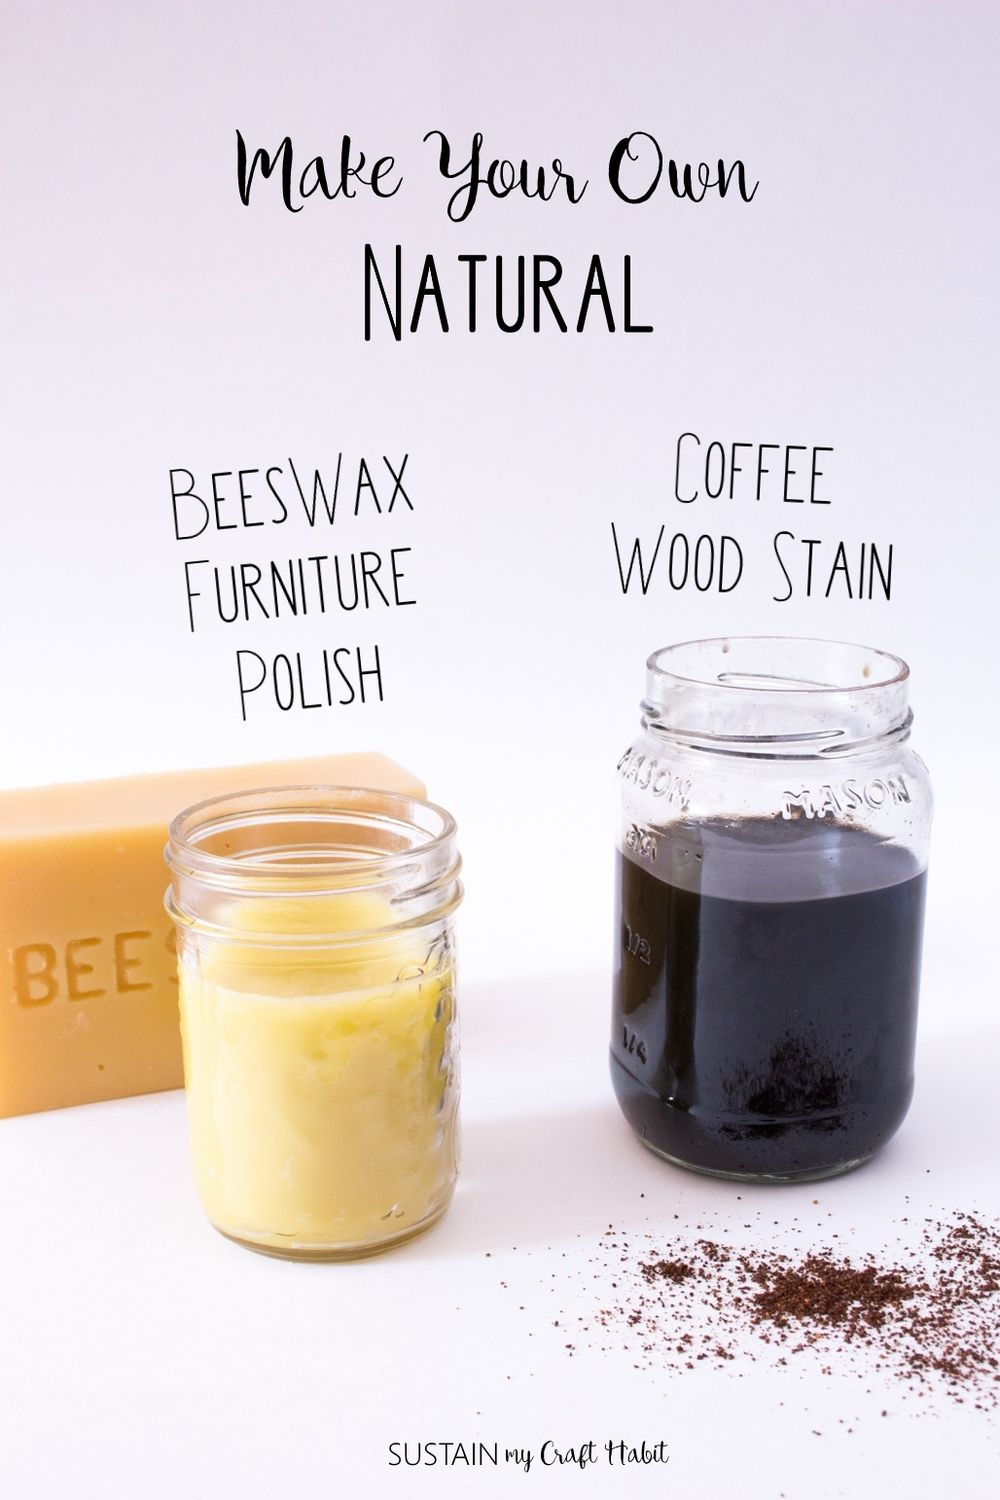 Check Out The Step By Step Instructions To Make Your Own Natural Coffee  Wood Stain And Beeswax Furniture Polish!